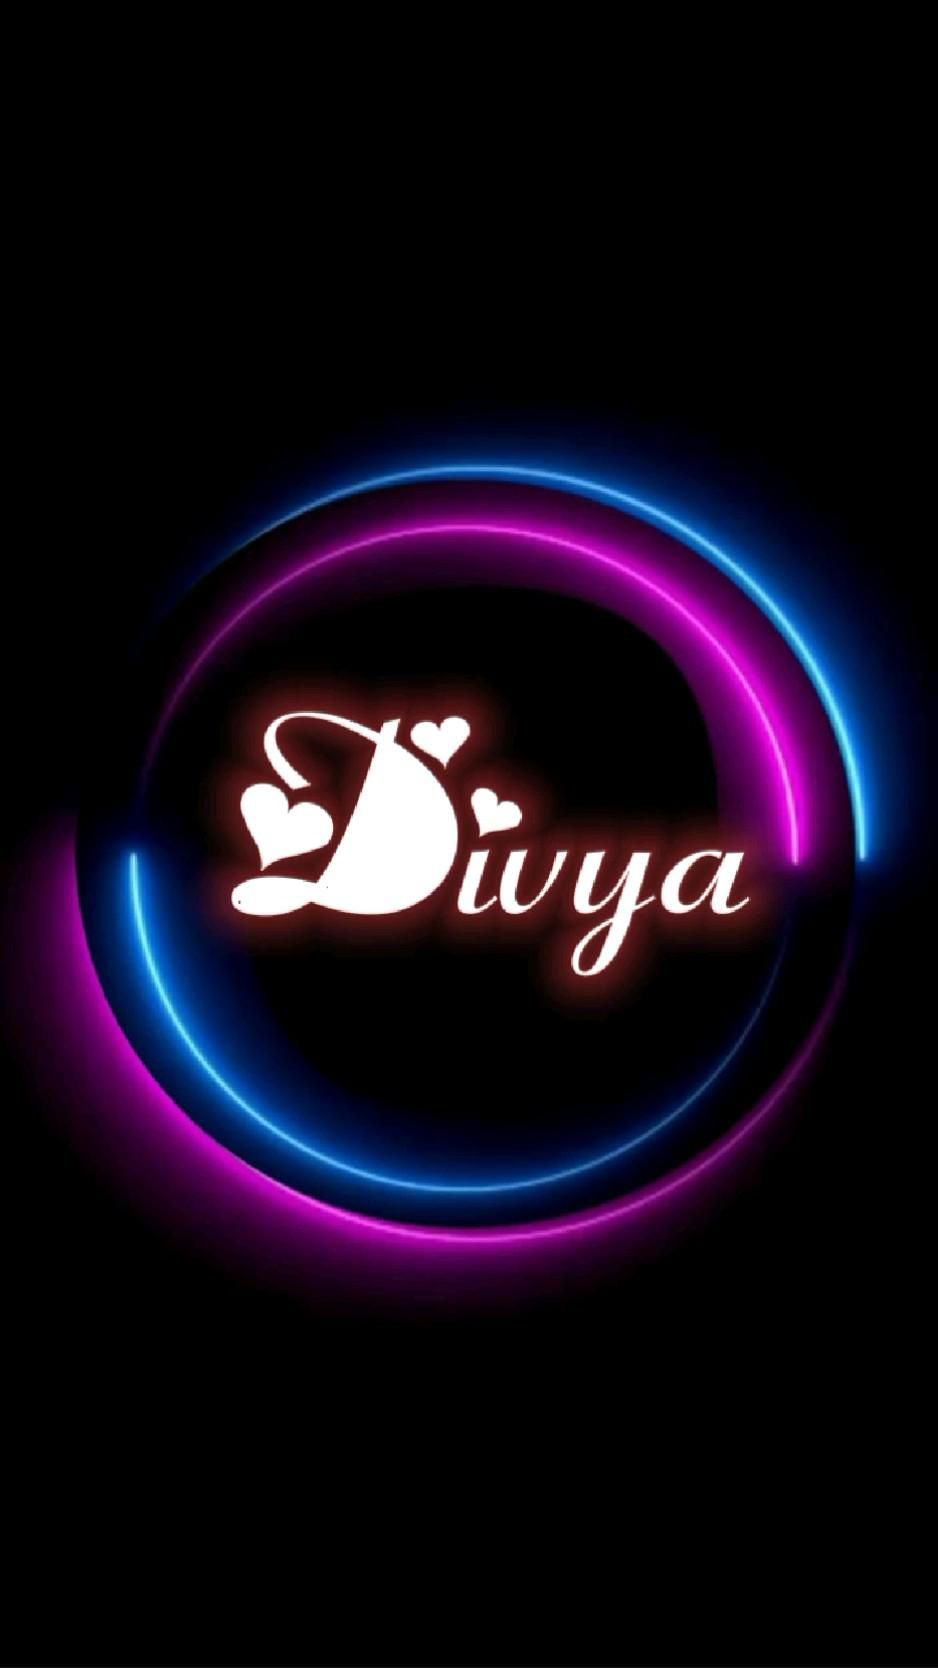 Requested by Divya